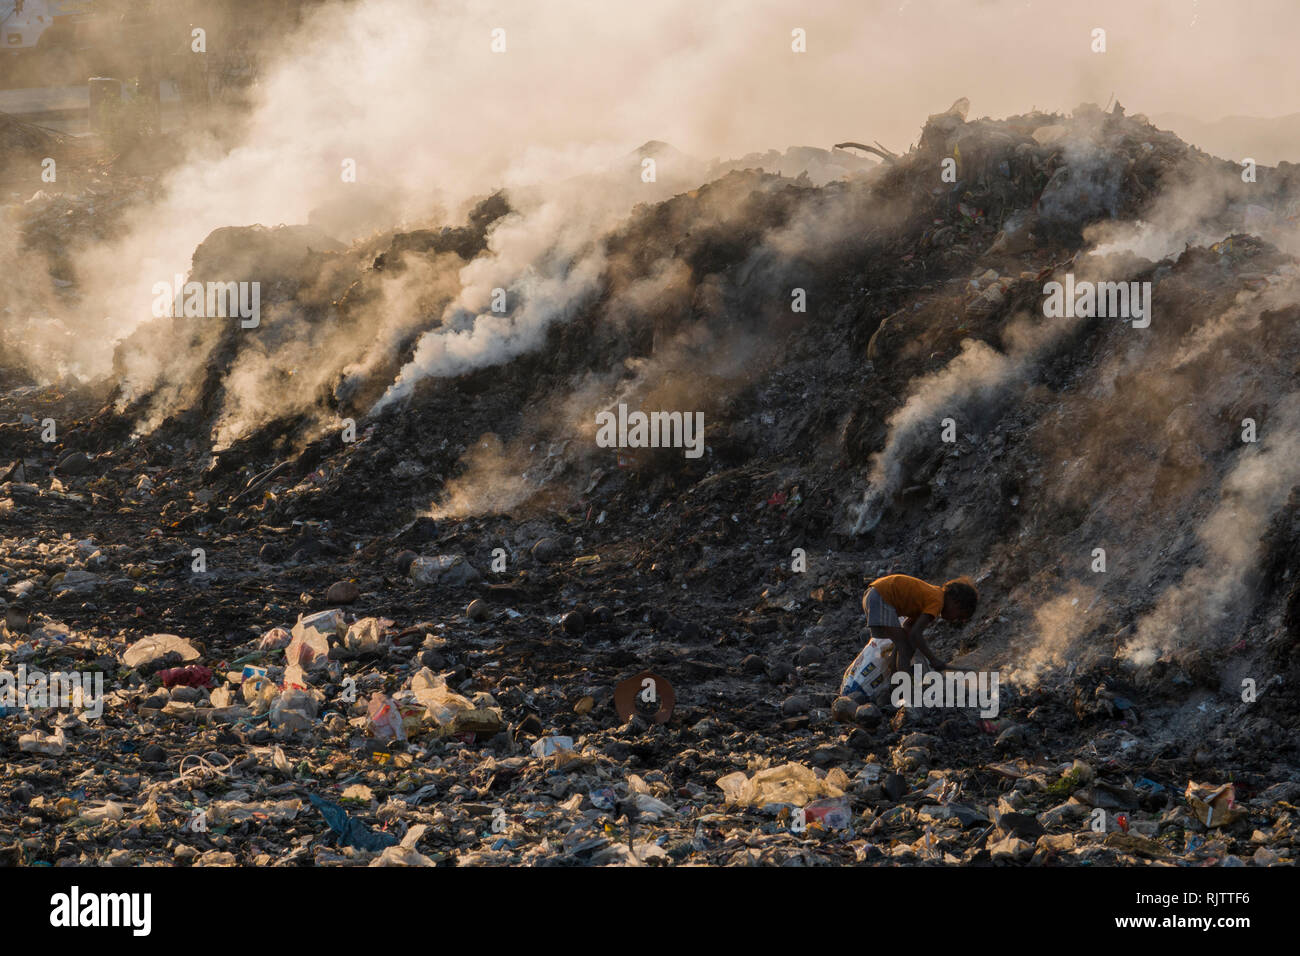 Young child collecting recyclable materials among toxic smoke from rubbish dump in Rishikesh, Uttarakhand, India Stock Photo